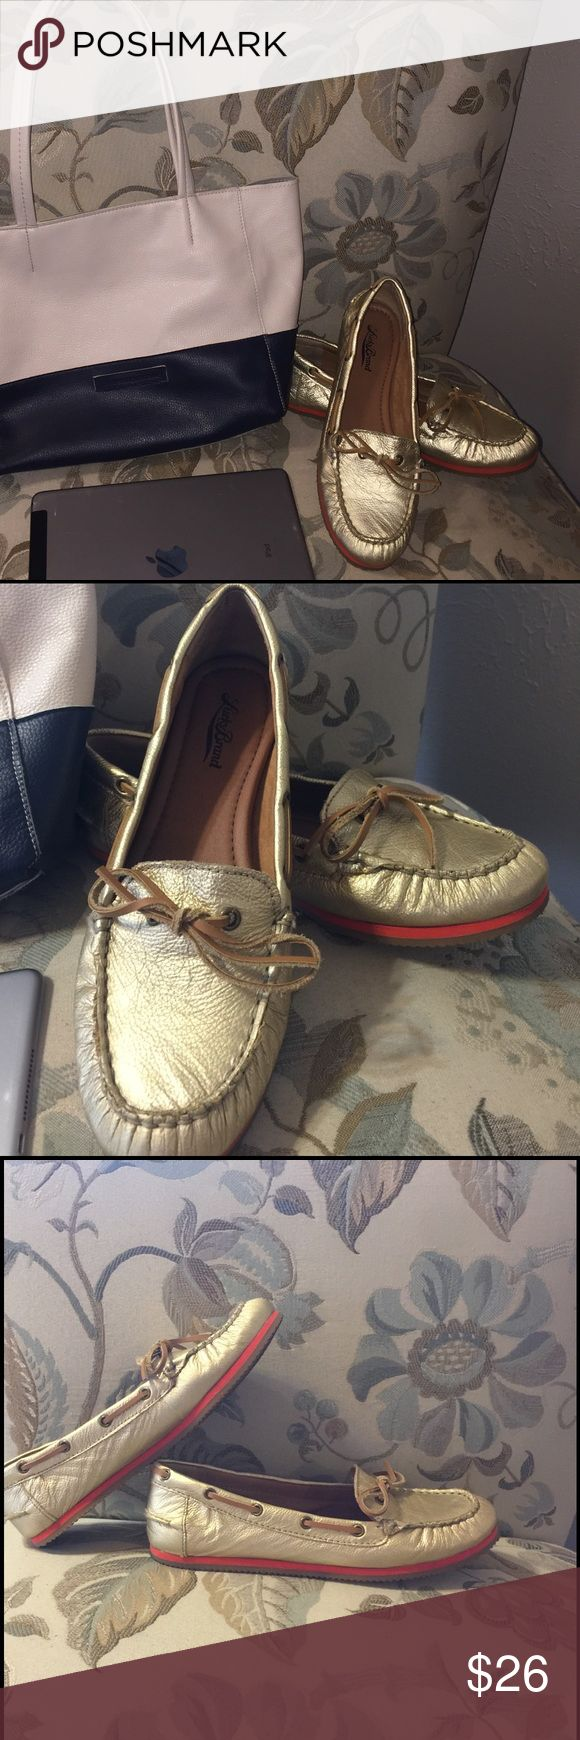 Lucky ladies boat shoes Lucky Brand size 8 gold loafers with coral stripe on sole...like new Lucky Brand Shoes Flats & Loafers